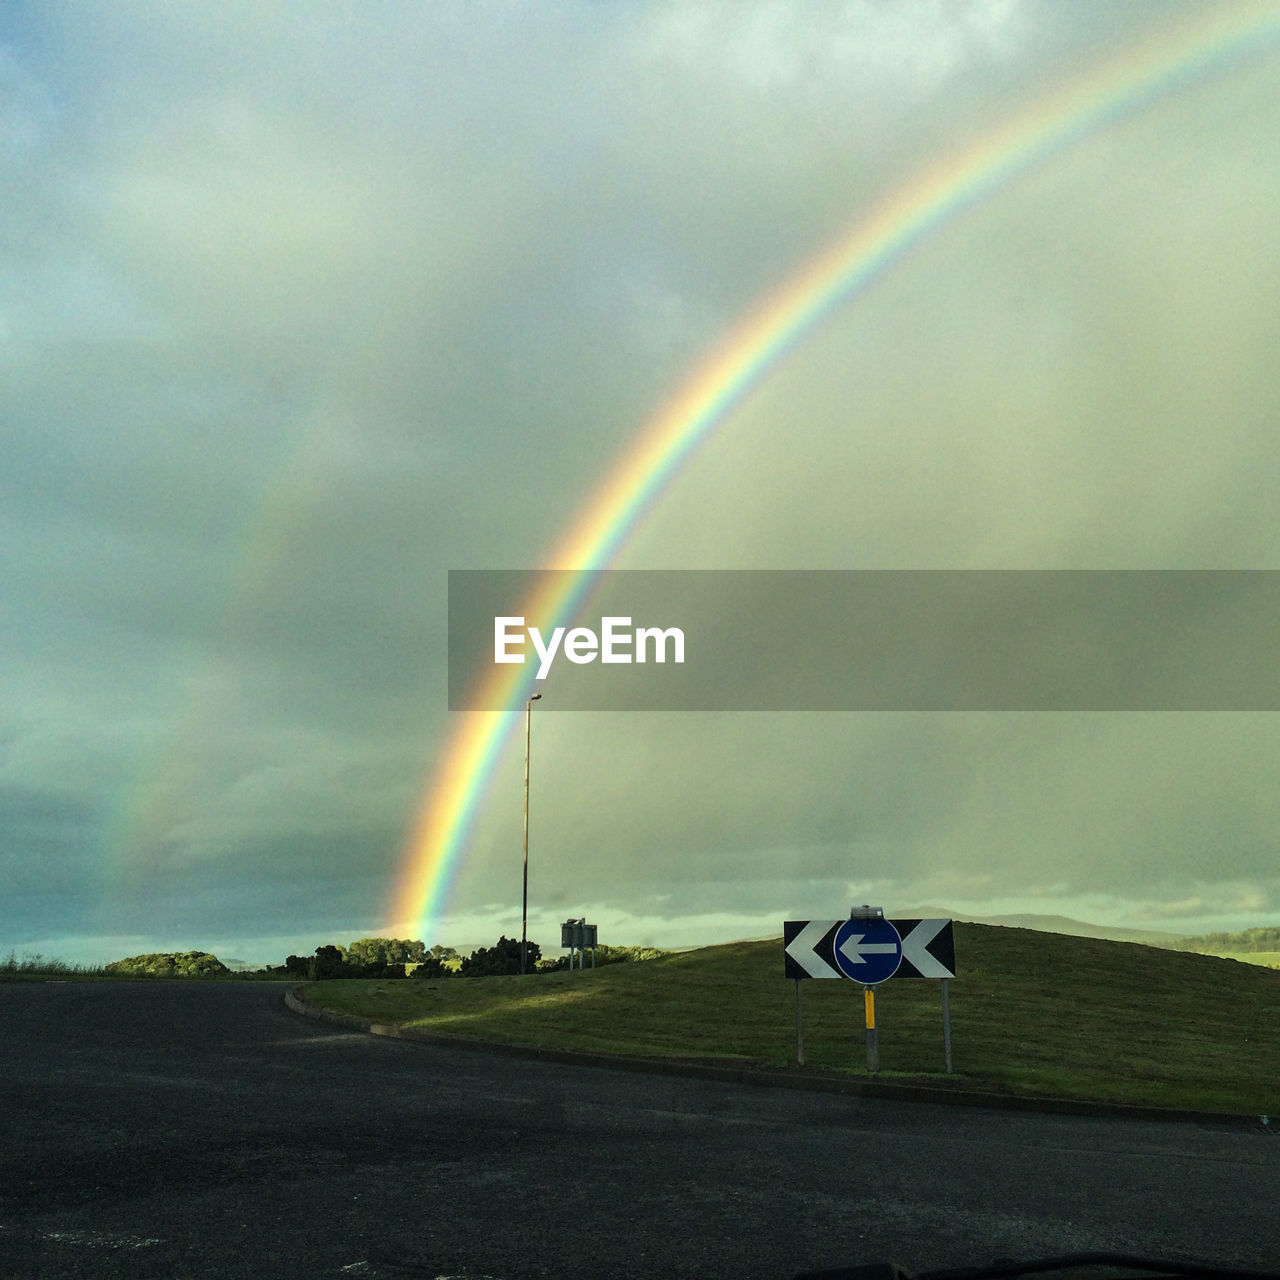 rainbow, double rainbow, sky, cloud - sky, landscape, scenics, day, beauty in nature, nature, weather, no people, field, outdoors, tranquil scene, tranquility, transportation, multi colored, storm cloud, grass, airplane